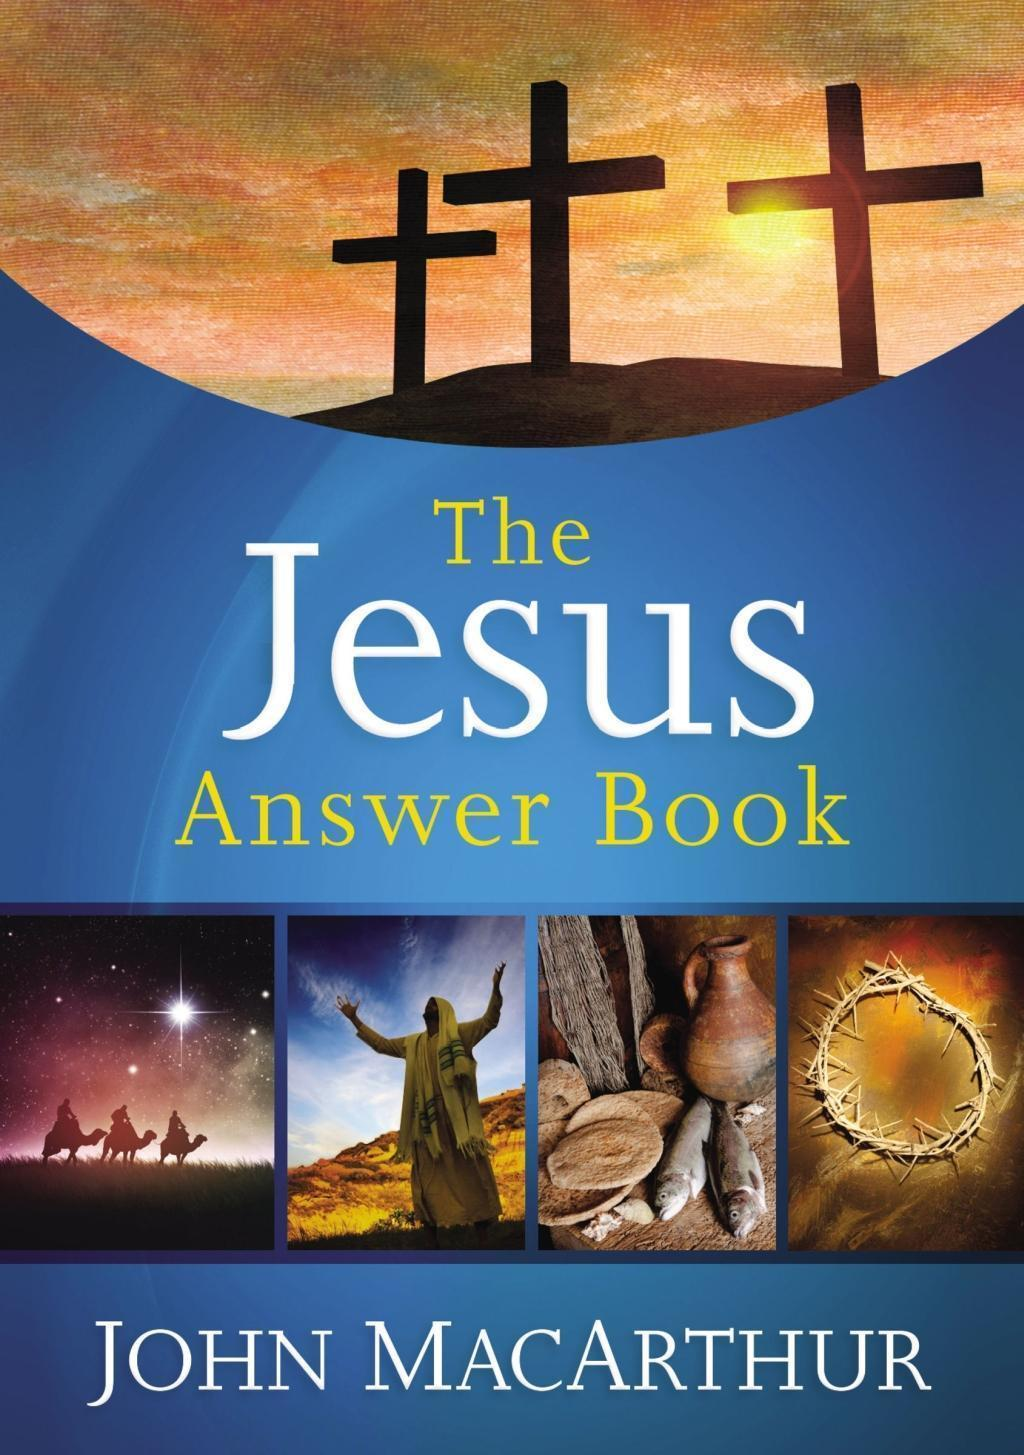 The Jesus Answer Book